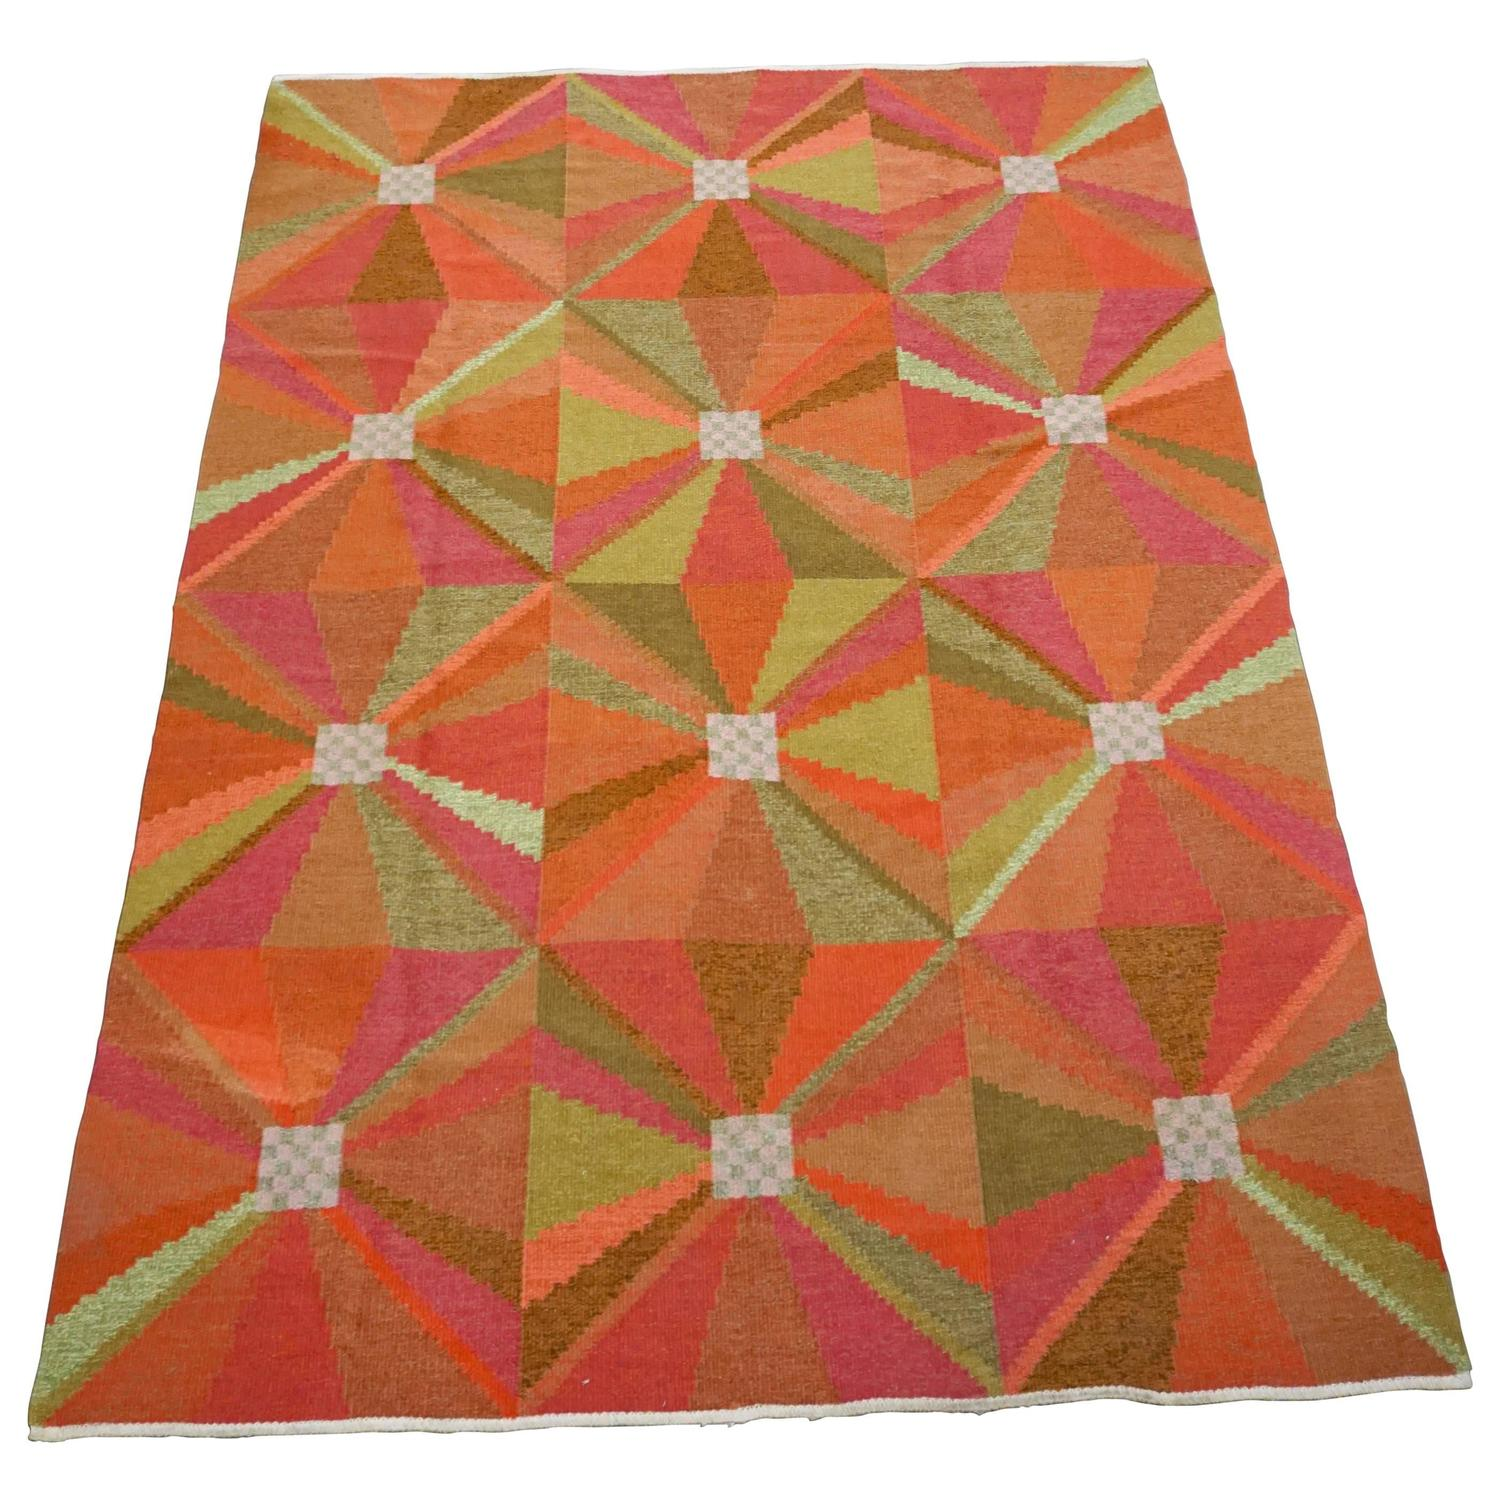 Colorful scandinavian rug for sale at 1stdibs for Colorful rugs for sale